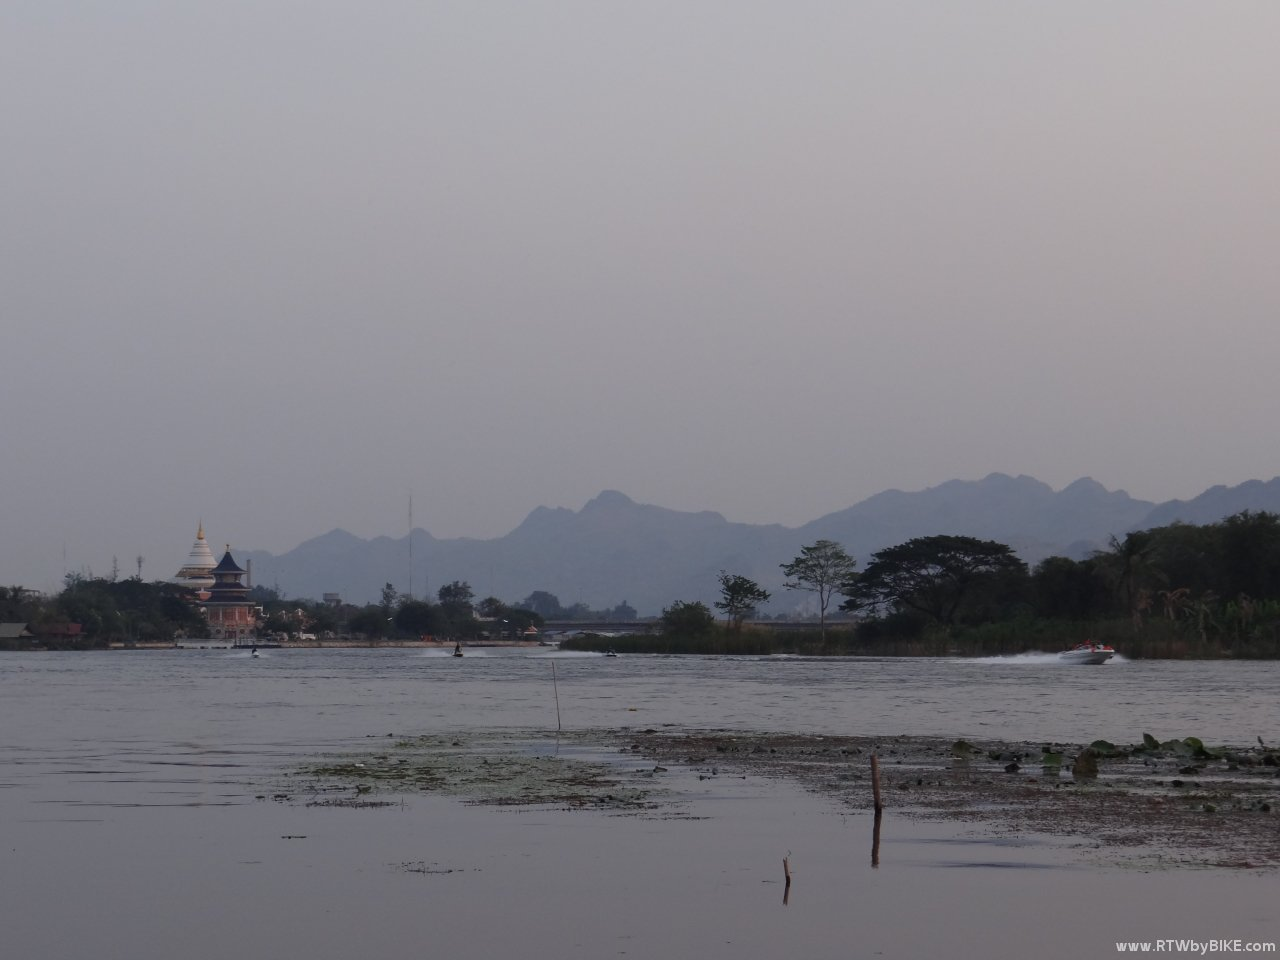 Kanchanaburi at the River Kwai